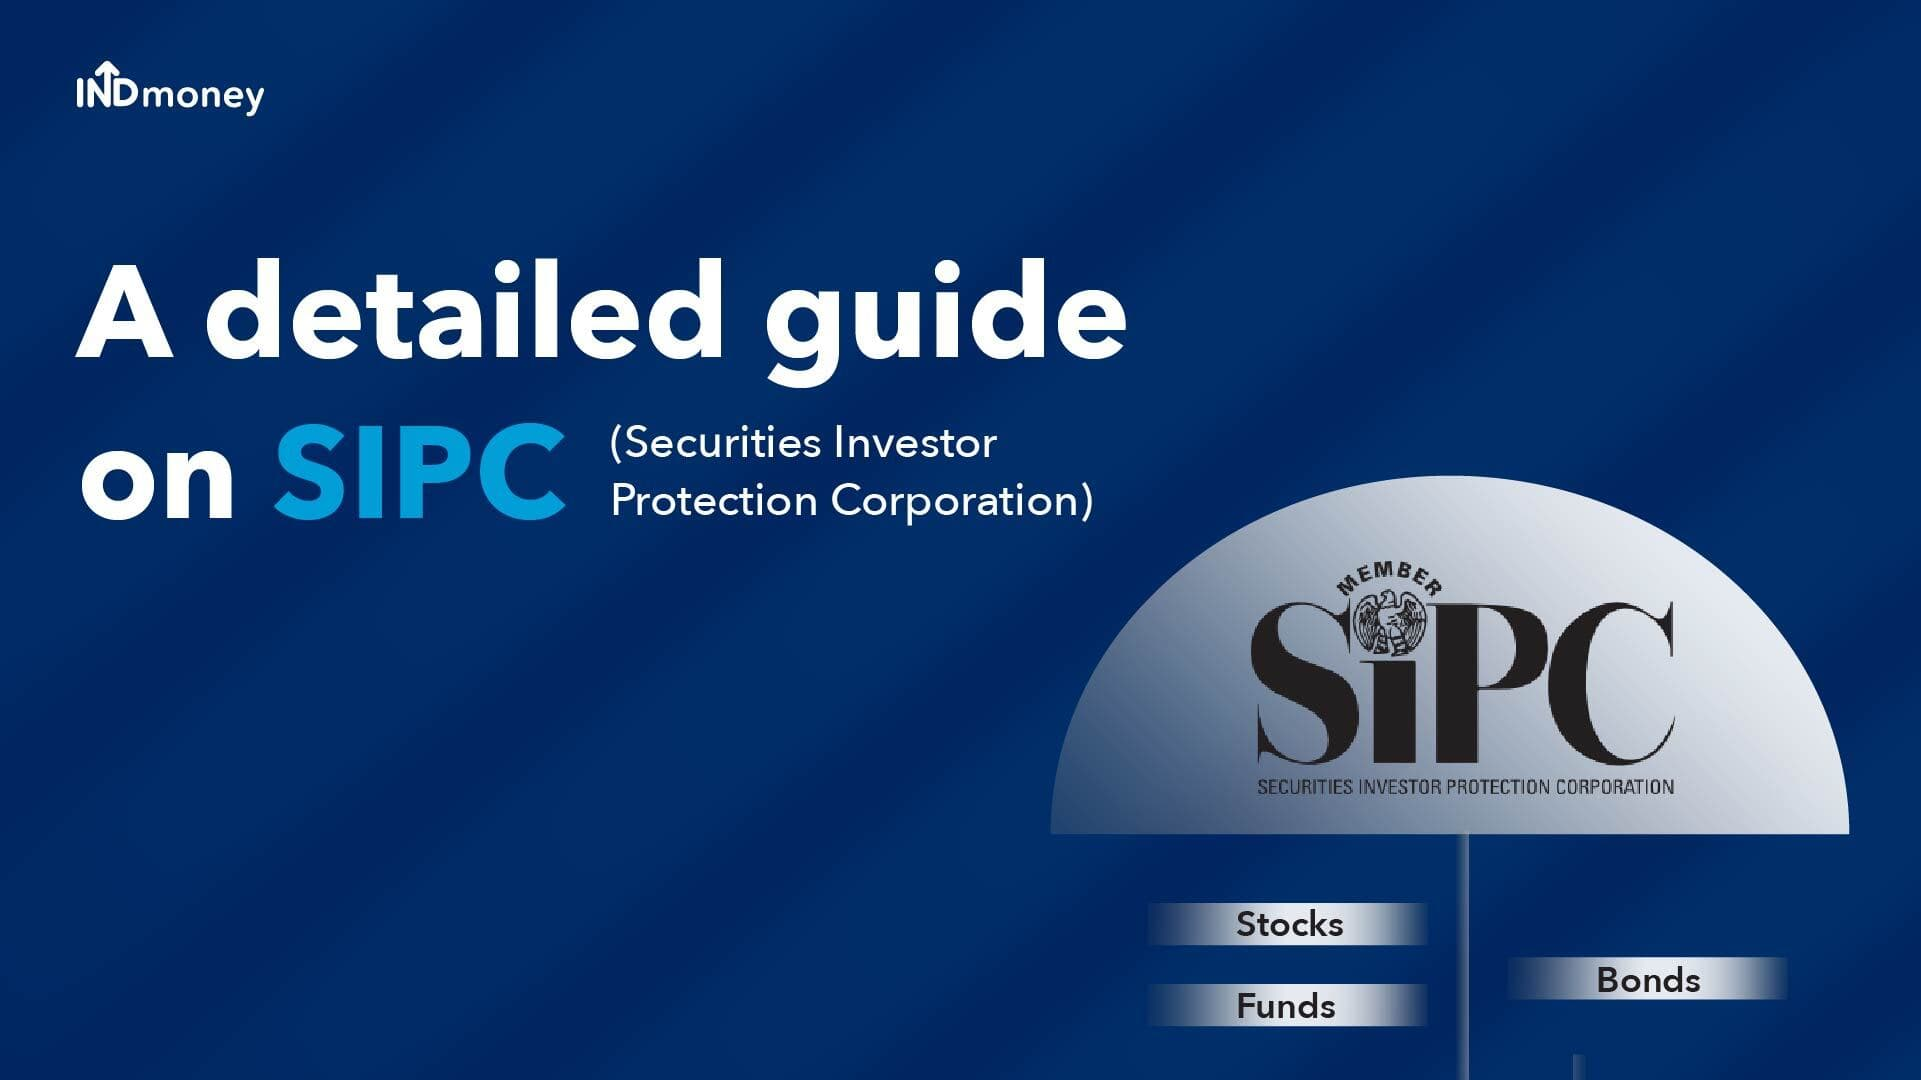 SIPC: Securities Investor Protection Corporation Definition, Functions & More